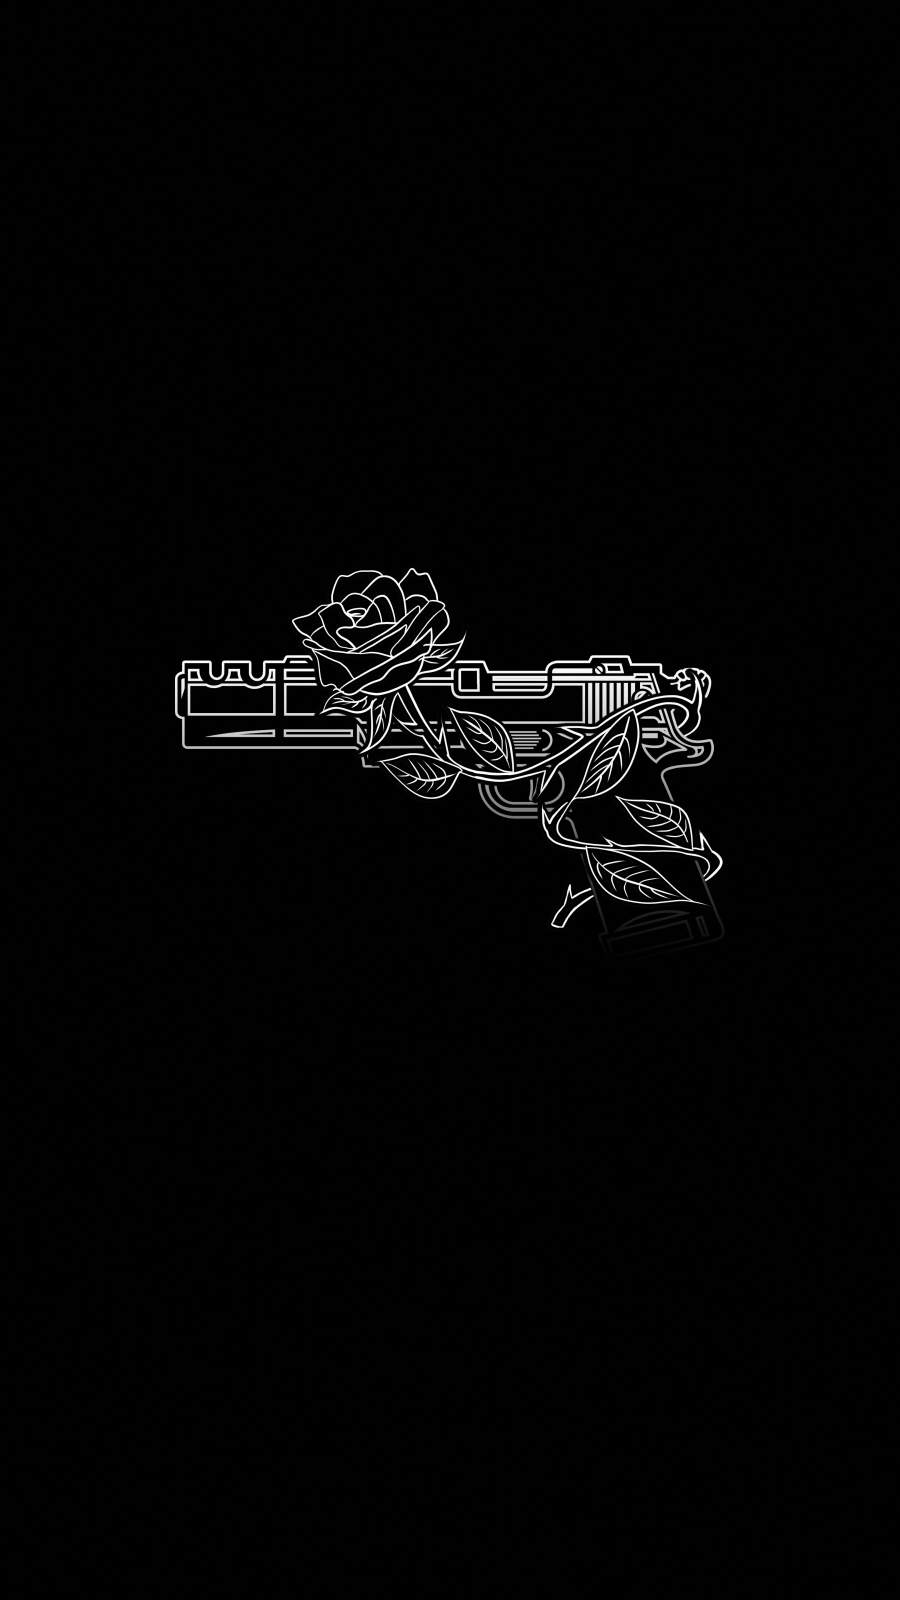 Gun and Rose iPhone Wallpaper